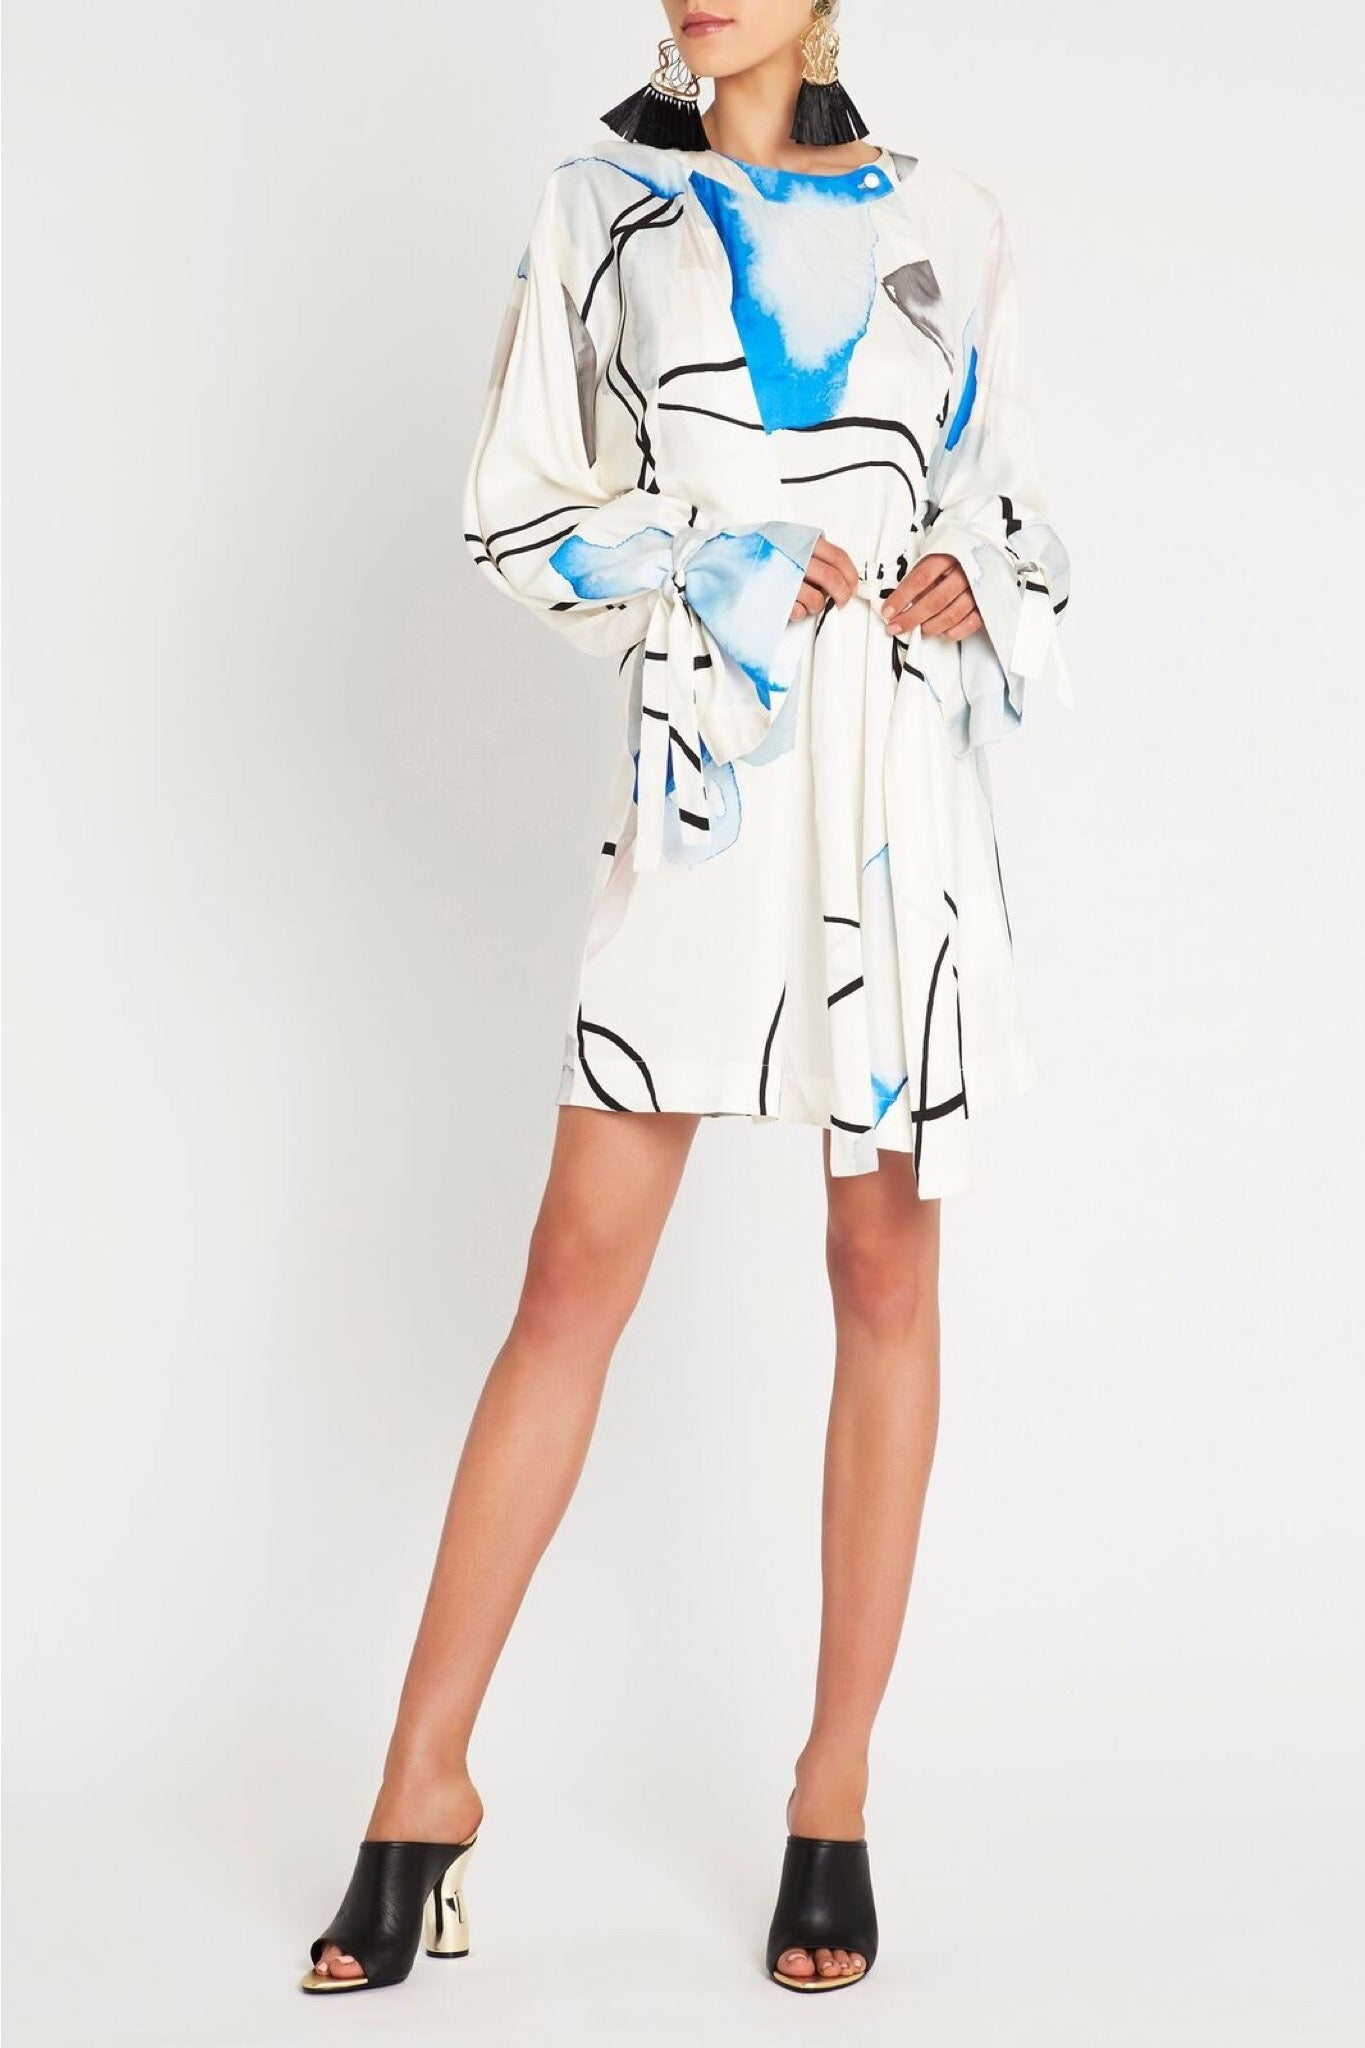 The Abstract Mini Dress